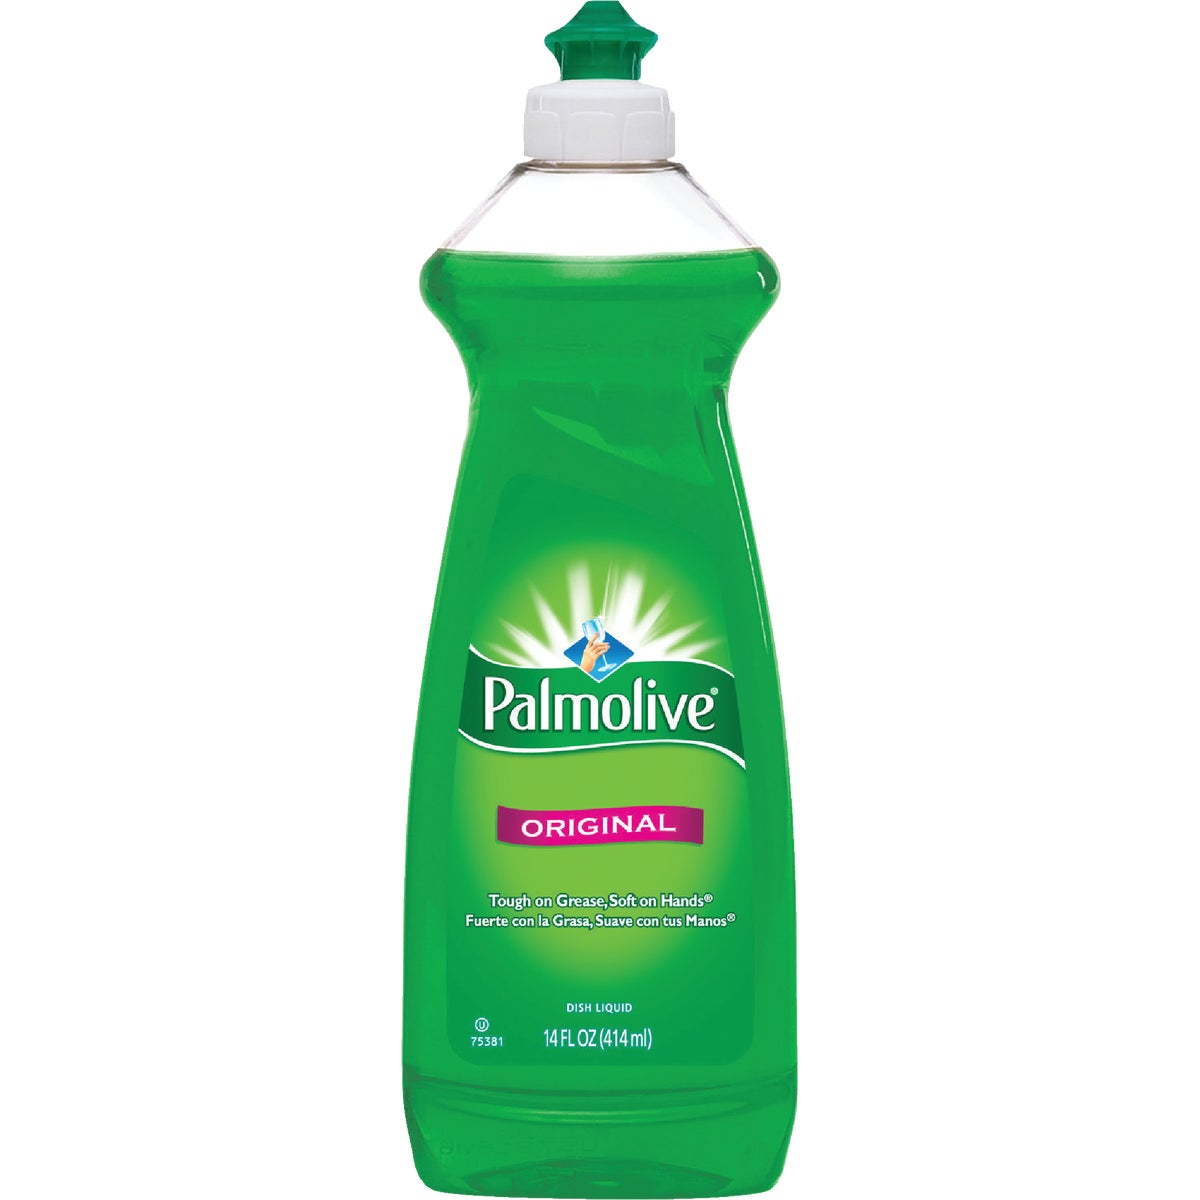 14OZ REGULAR PALMOLIVE - 46192 by Lagassesweet  Incom